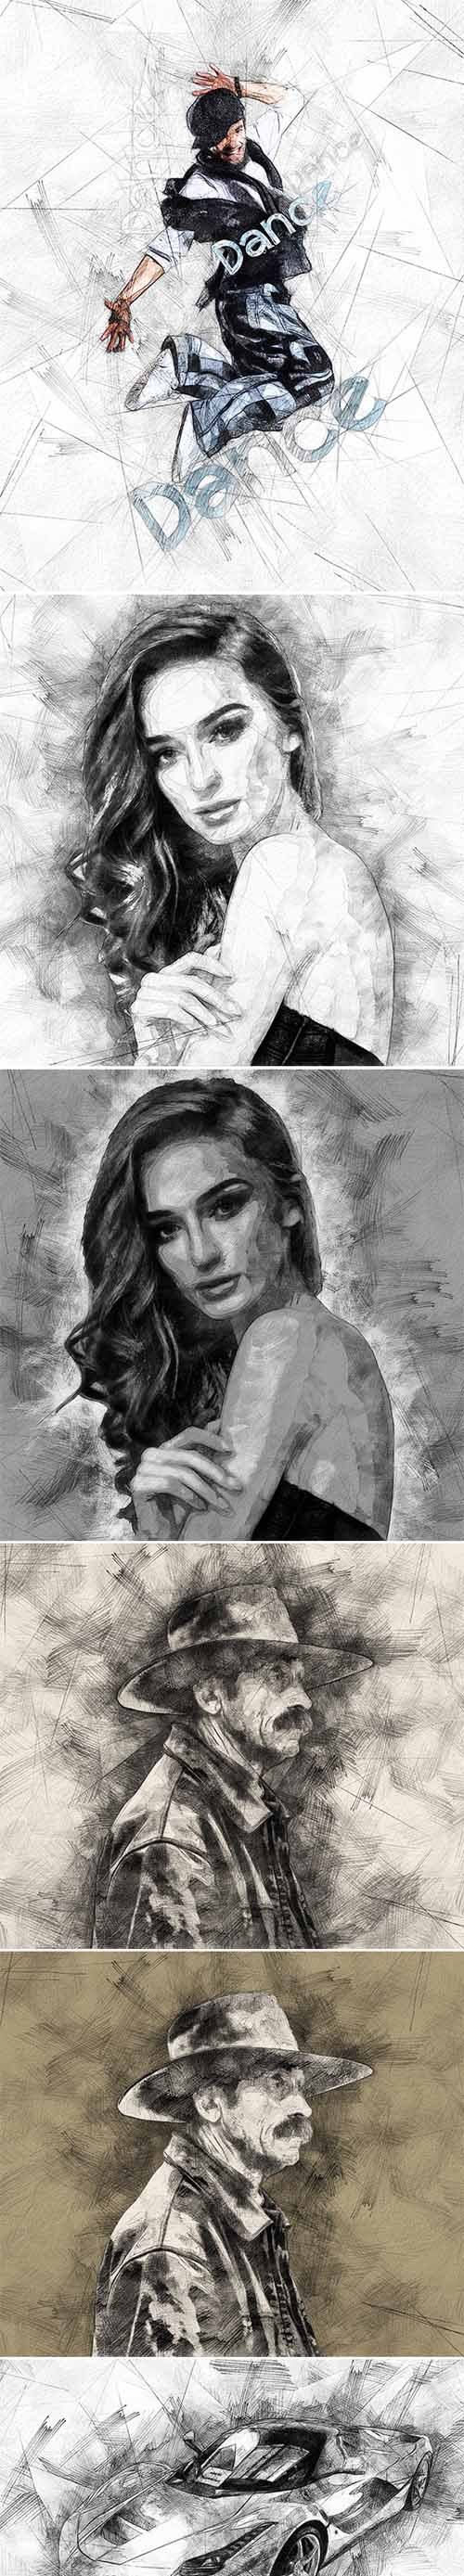 Gr pencil drawing photoshop action 19737502